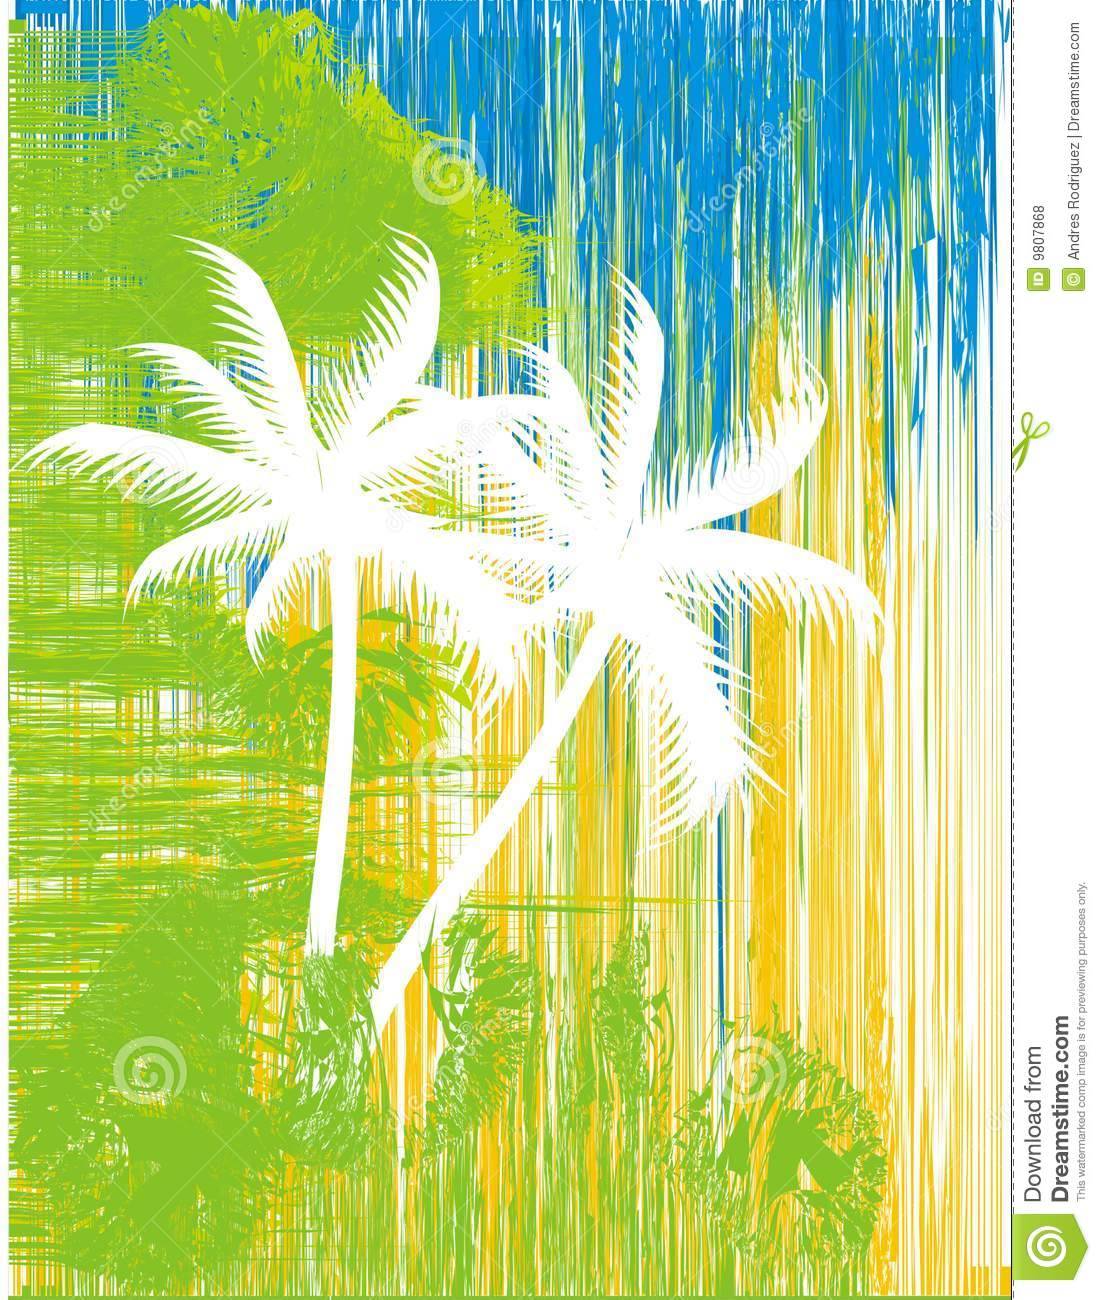 Graphic Stock Free Trial Abstract Palm Trees Stock Vector Illustration Of